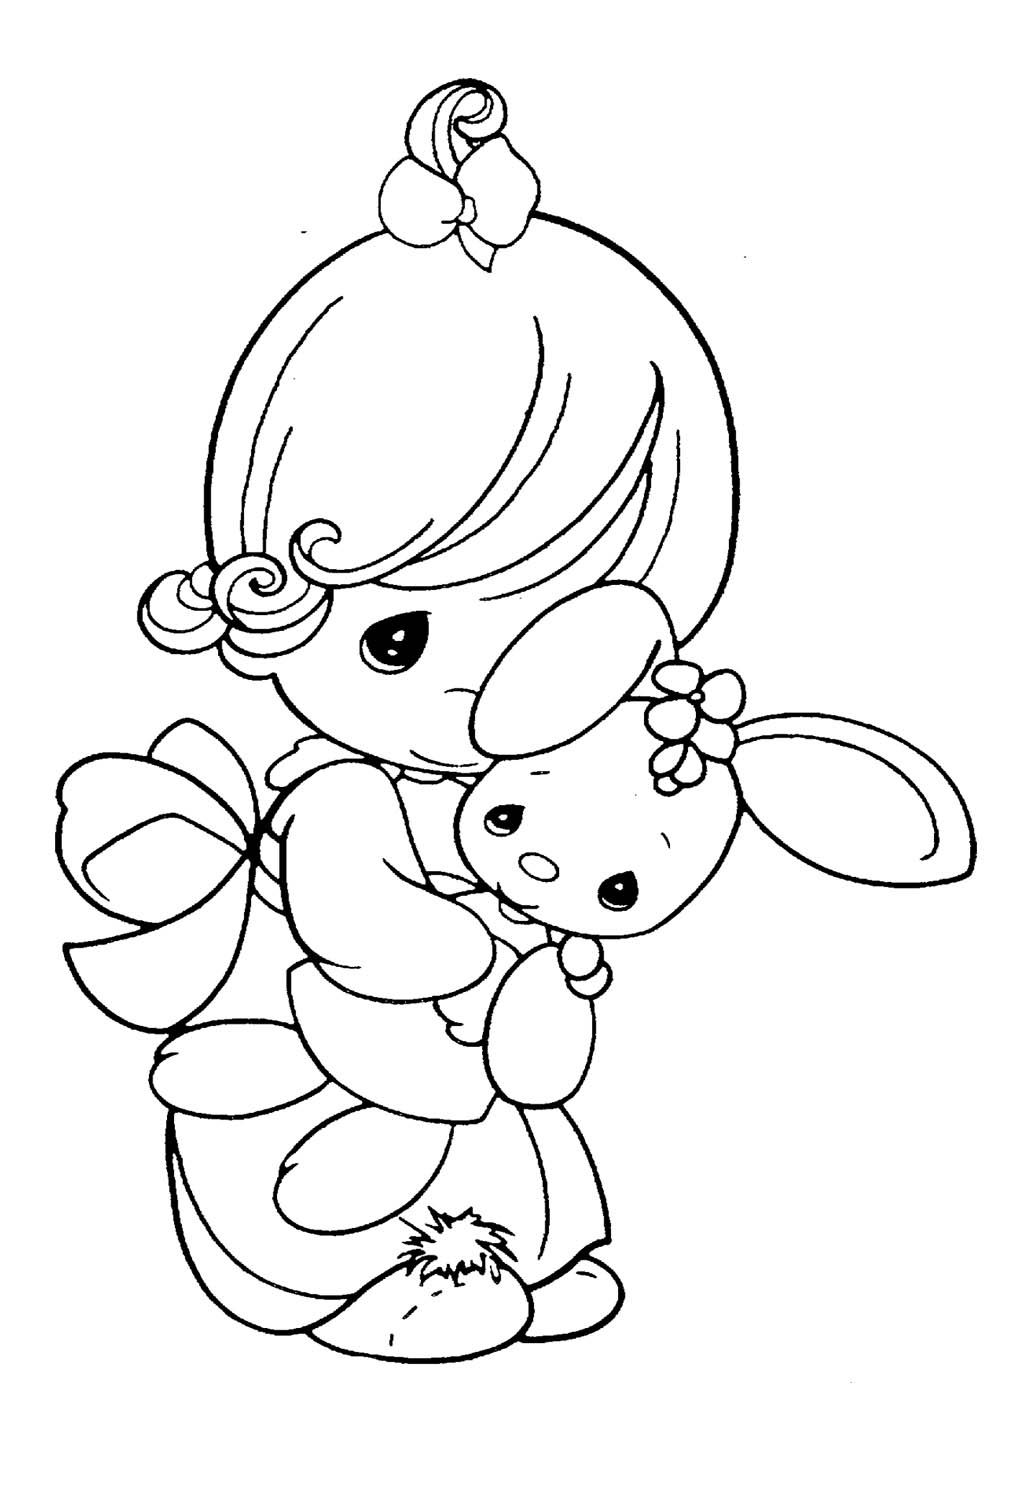 precious moments jesus loves me coloring pages | Precious Moments Coloring Pages Little Cuddle Doll For ...